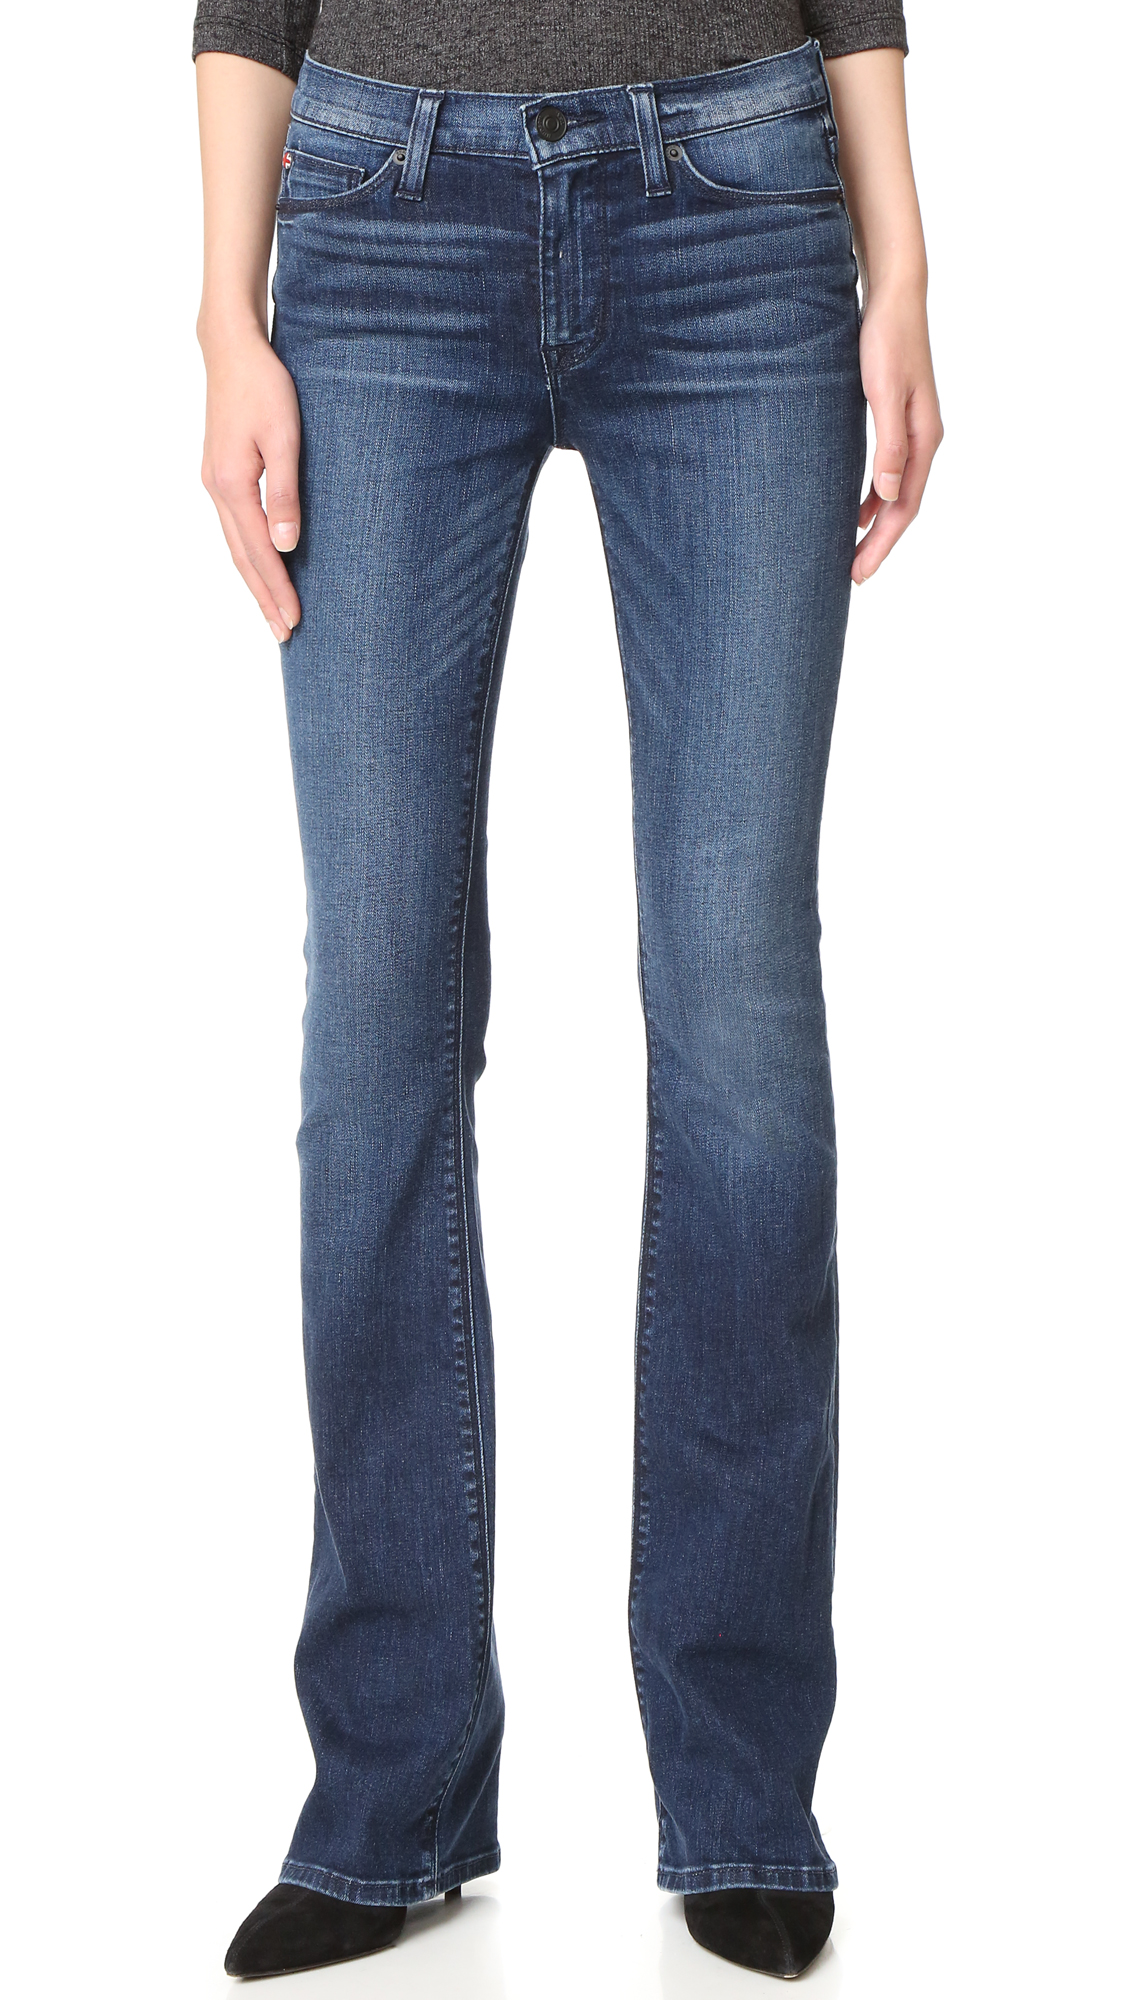 Hudson Love Mid Rise Boot Cut Jeans - Moonshine at Shopbop